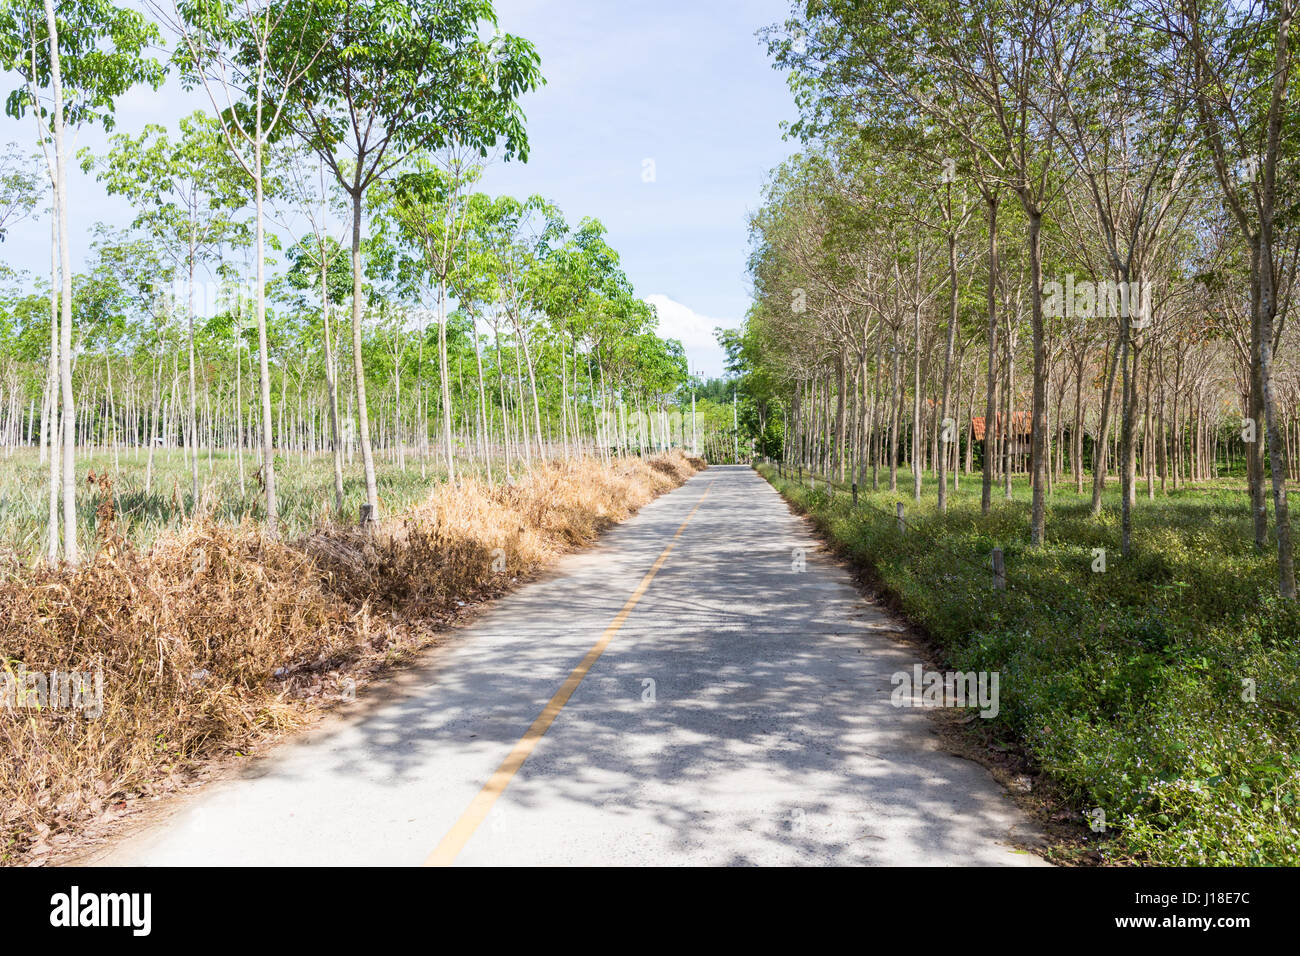 Road through young rubber tree plantations, Phuket, Thailand - Stock Image